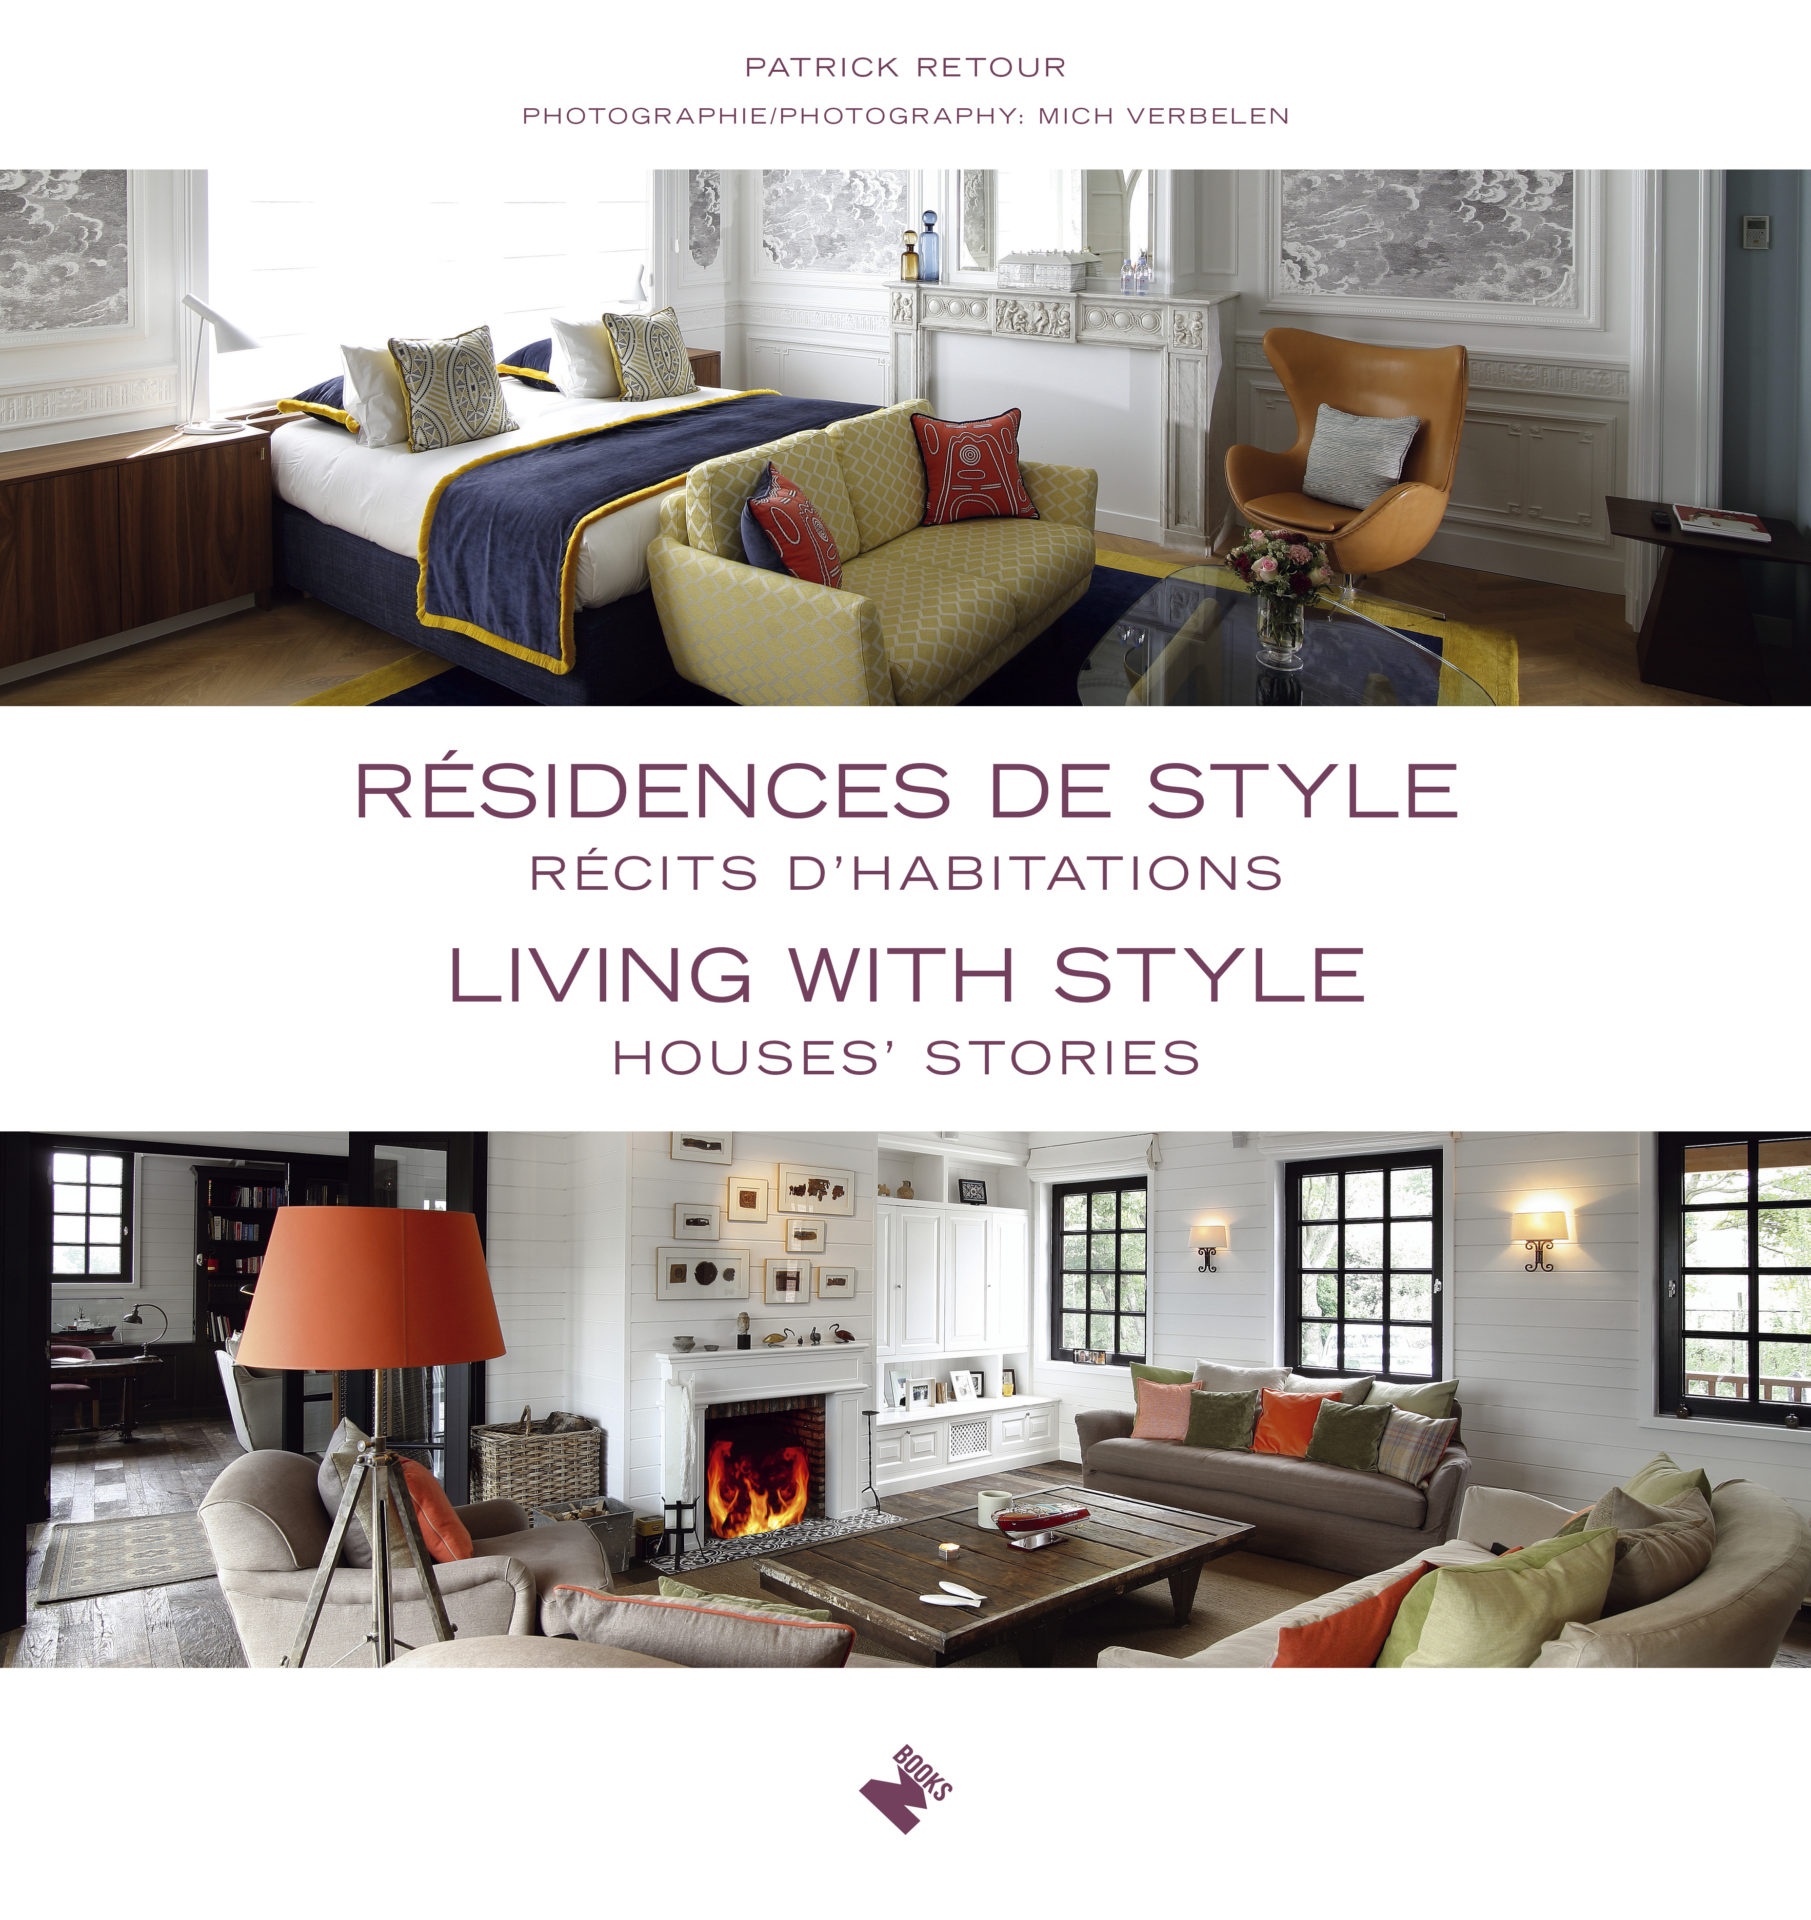 Second show-villa Marcottestyle – Living with style 2018